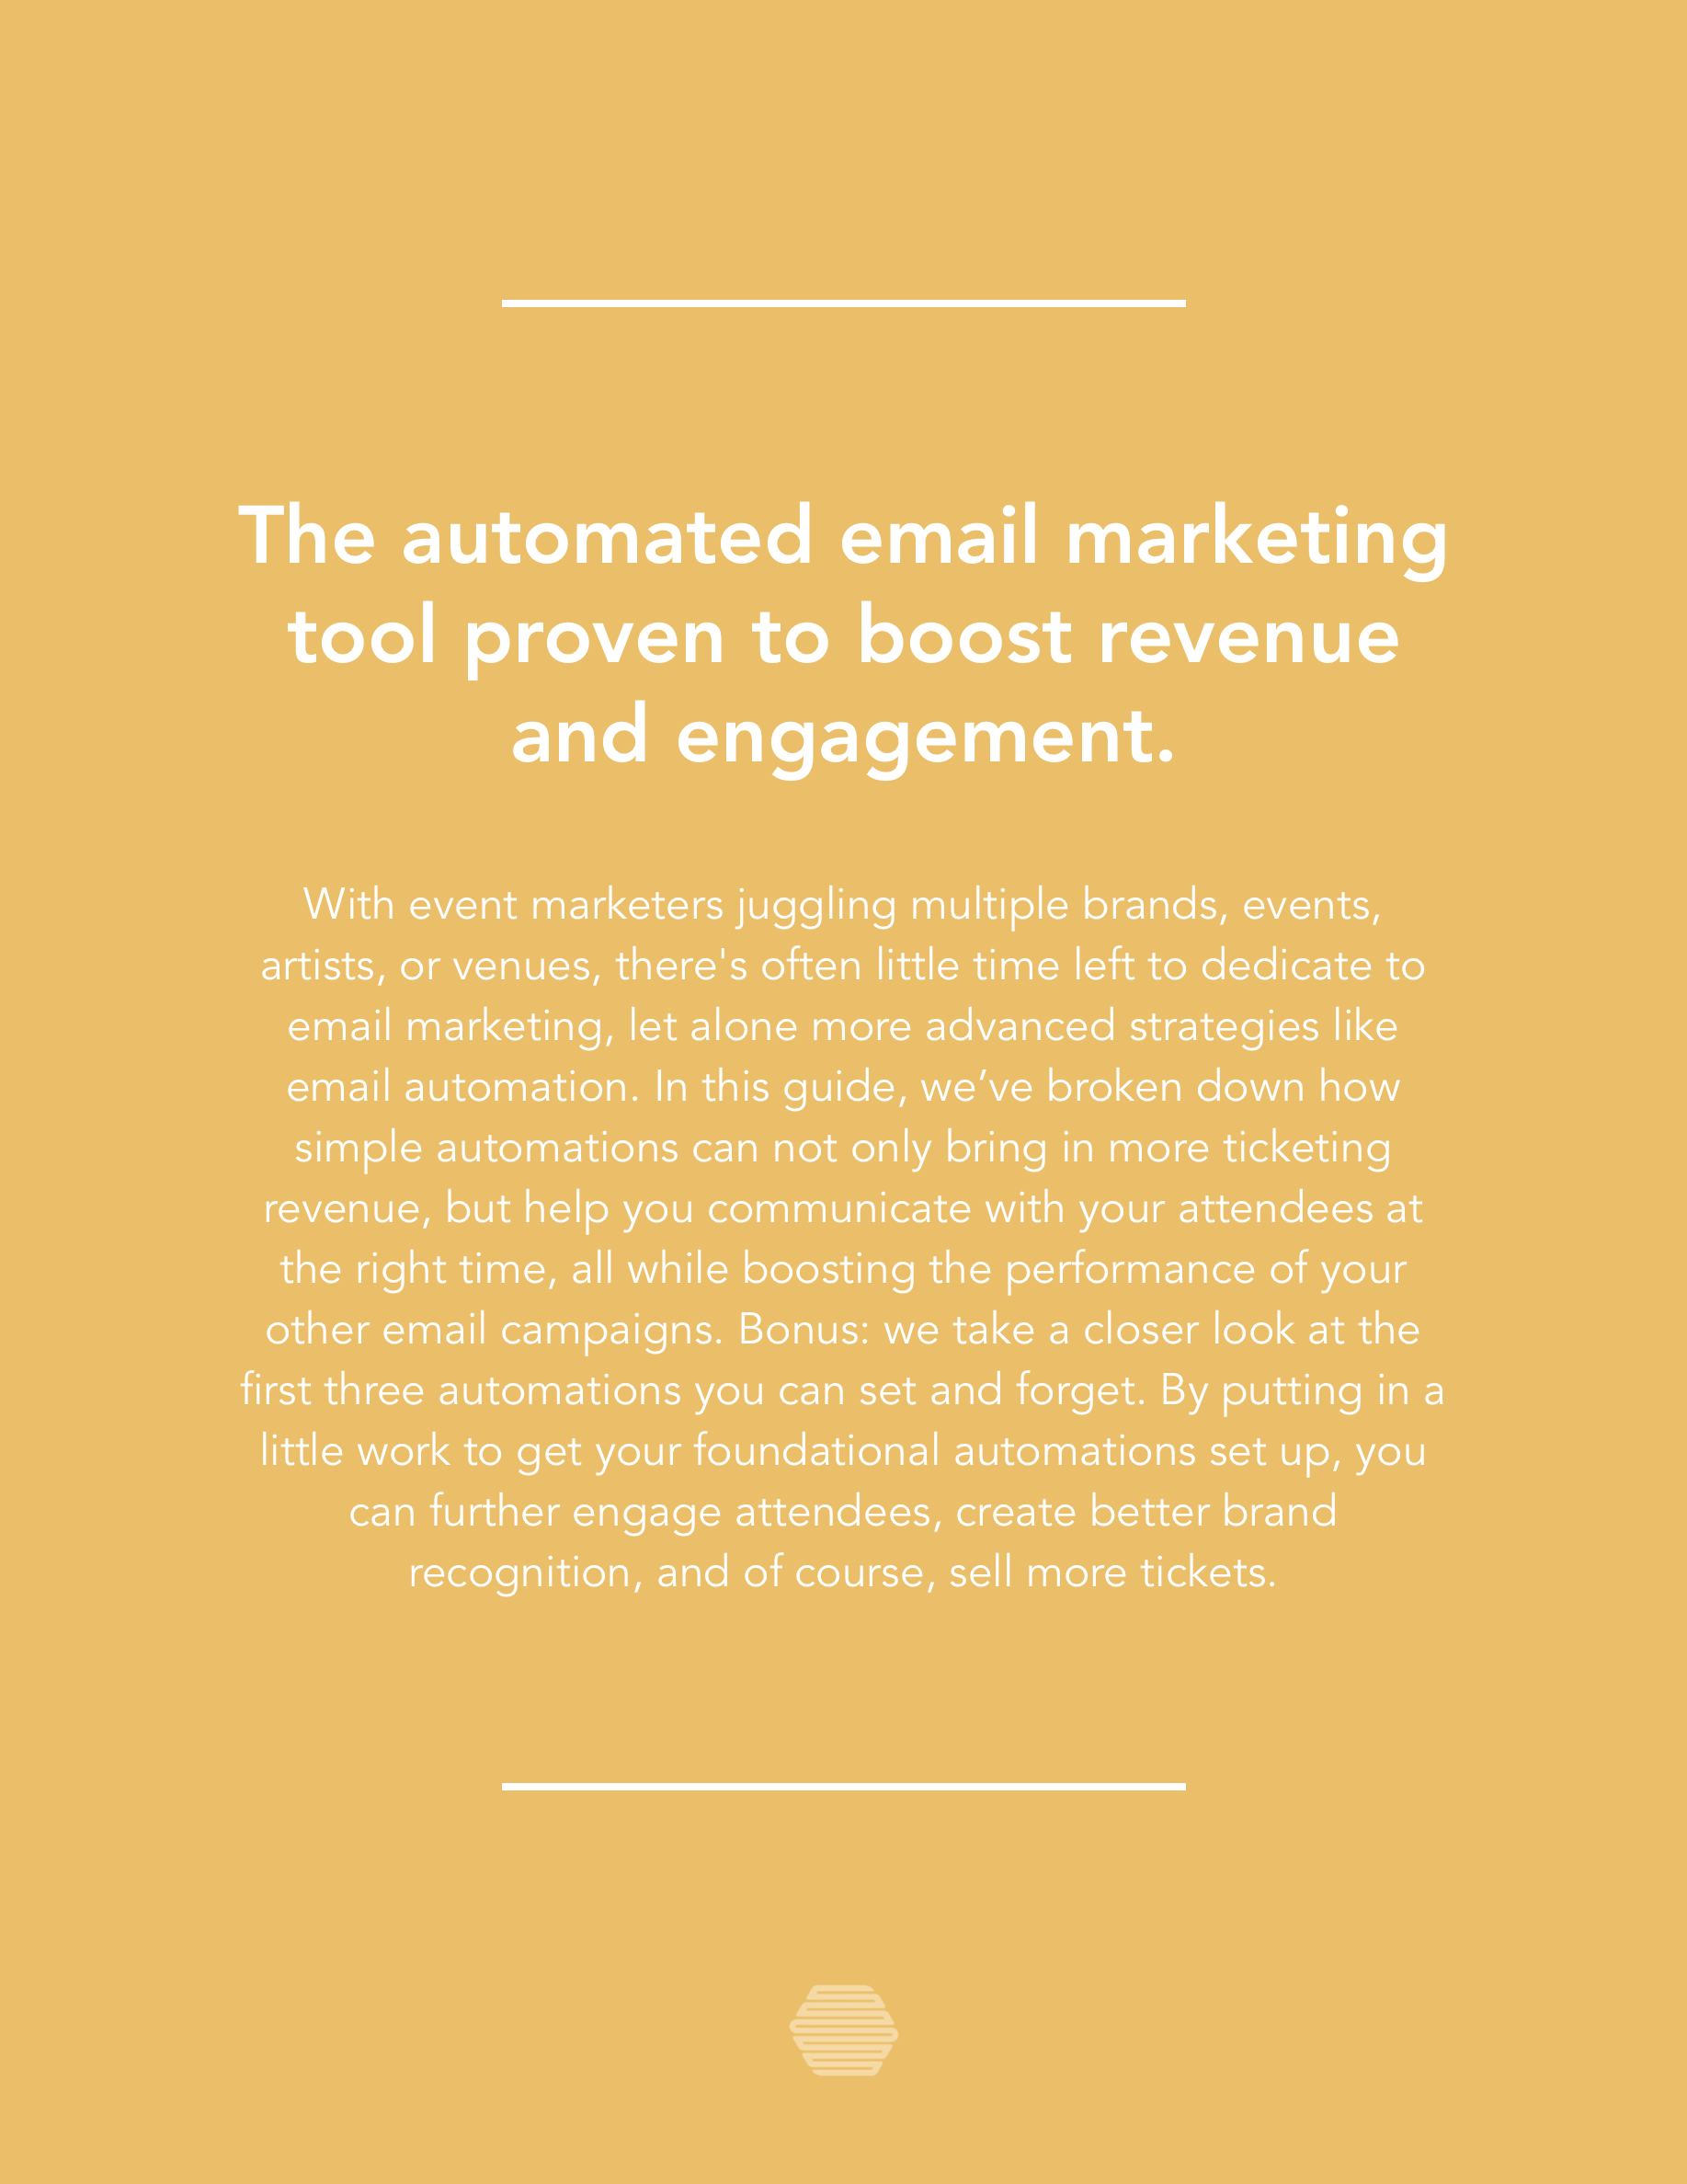 Hive.co Email Automations for Event Marketers Guide Preview Page 2